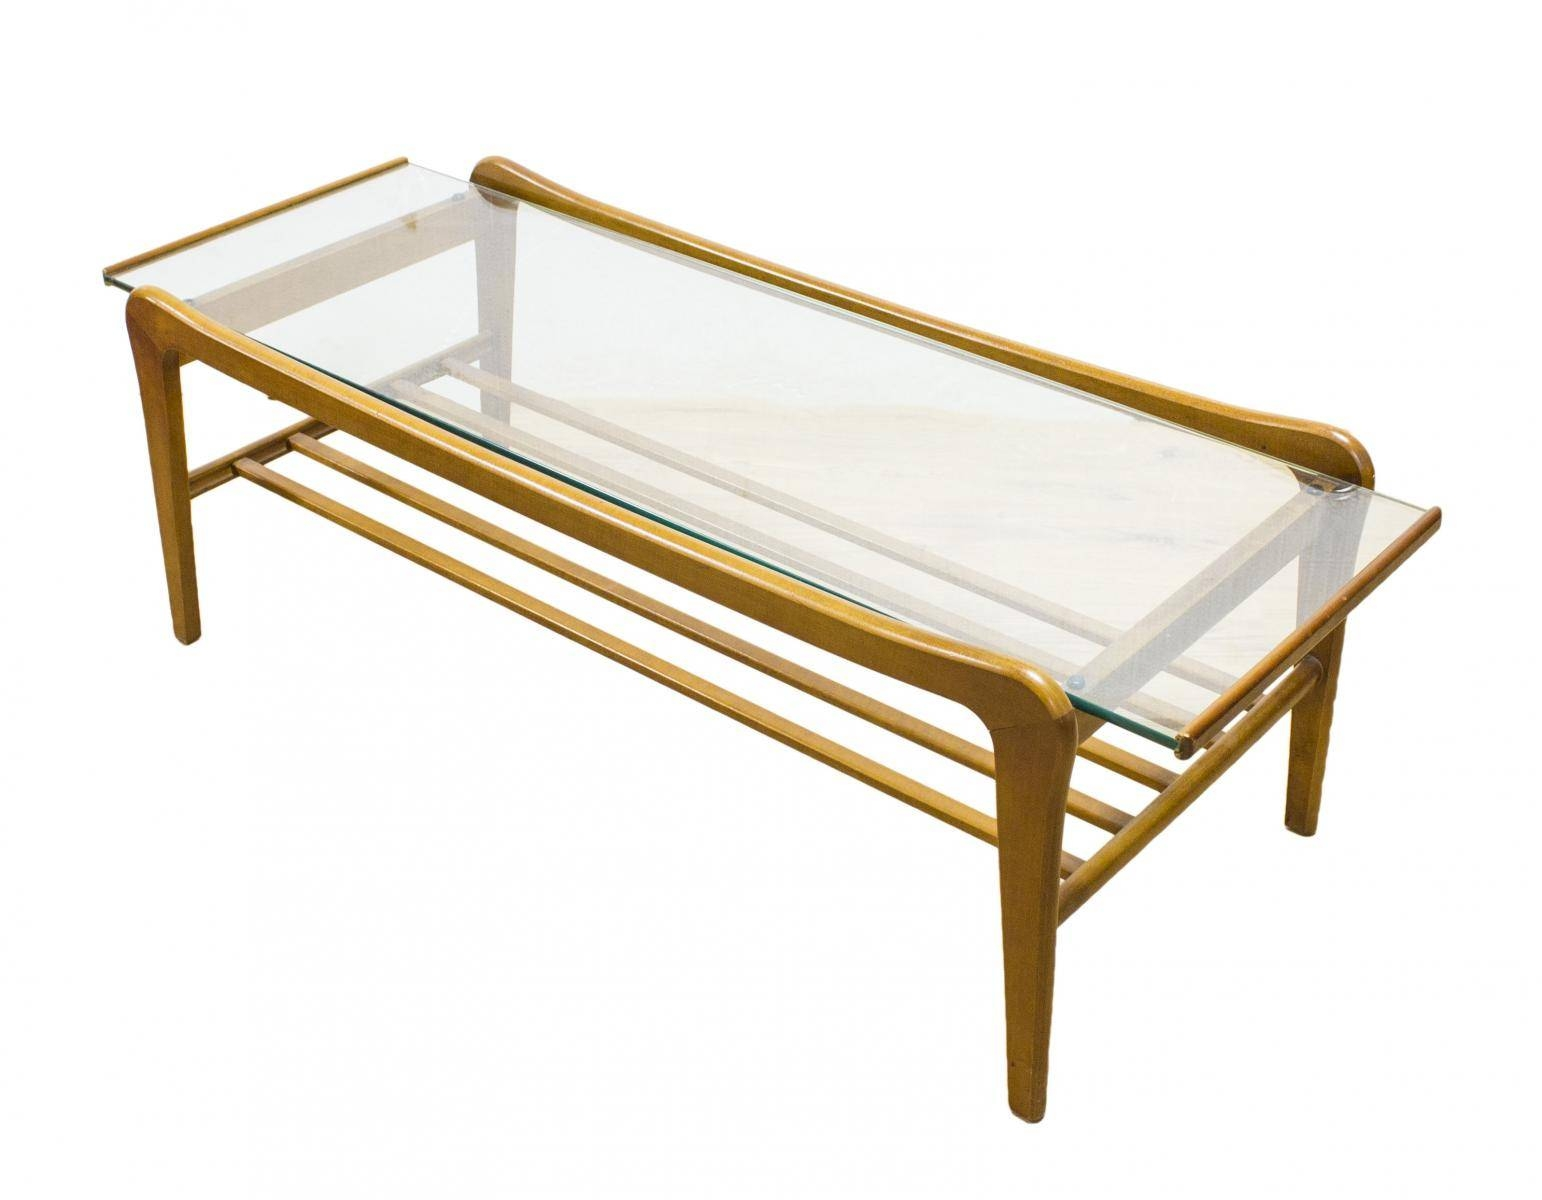 Danish Teak And Glass Coffee Table With Magazine Shelf For Sale At In Retro Teak Glass Coffee Tables (View 21 of 30)